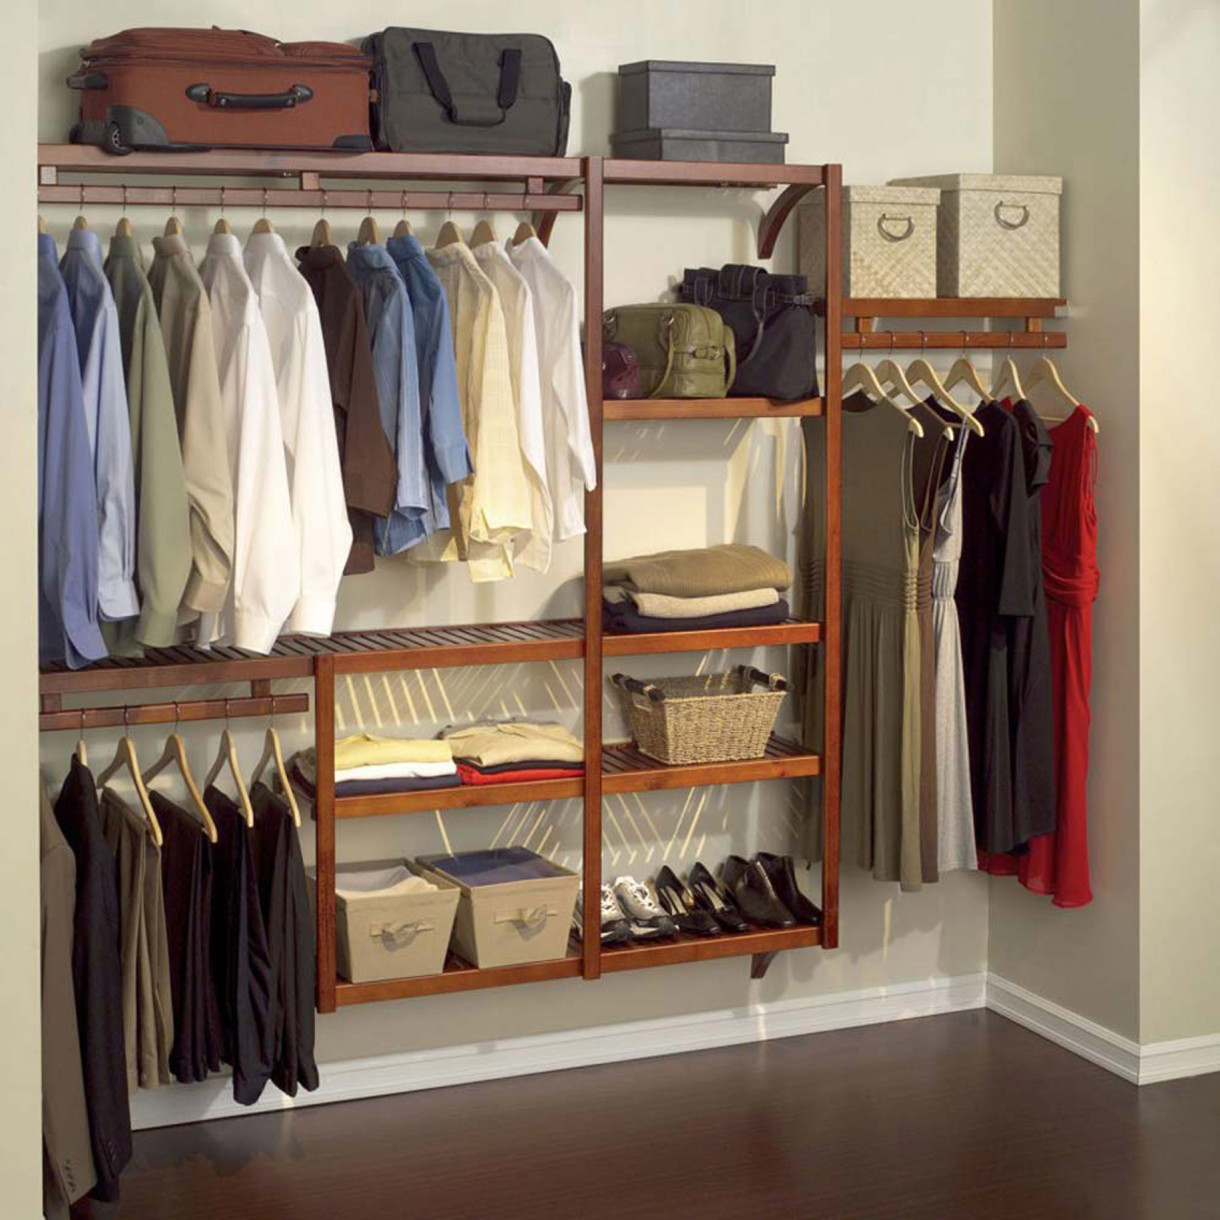 Cute-apartment-closet-ideas-with-wooden-rack-and-shelves-for-storing-shoes-and-shirt-closet-shoe-storage-ideas